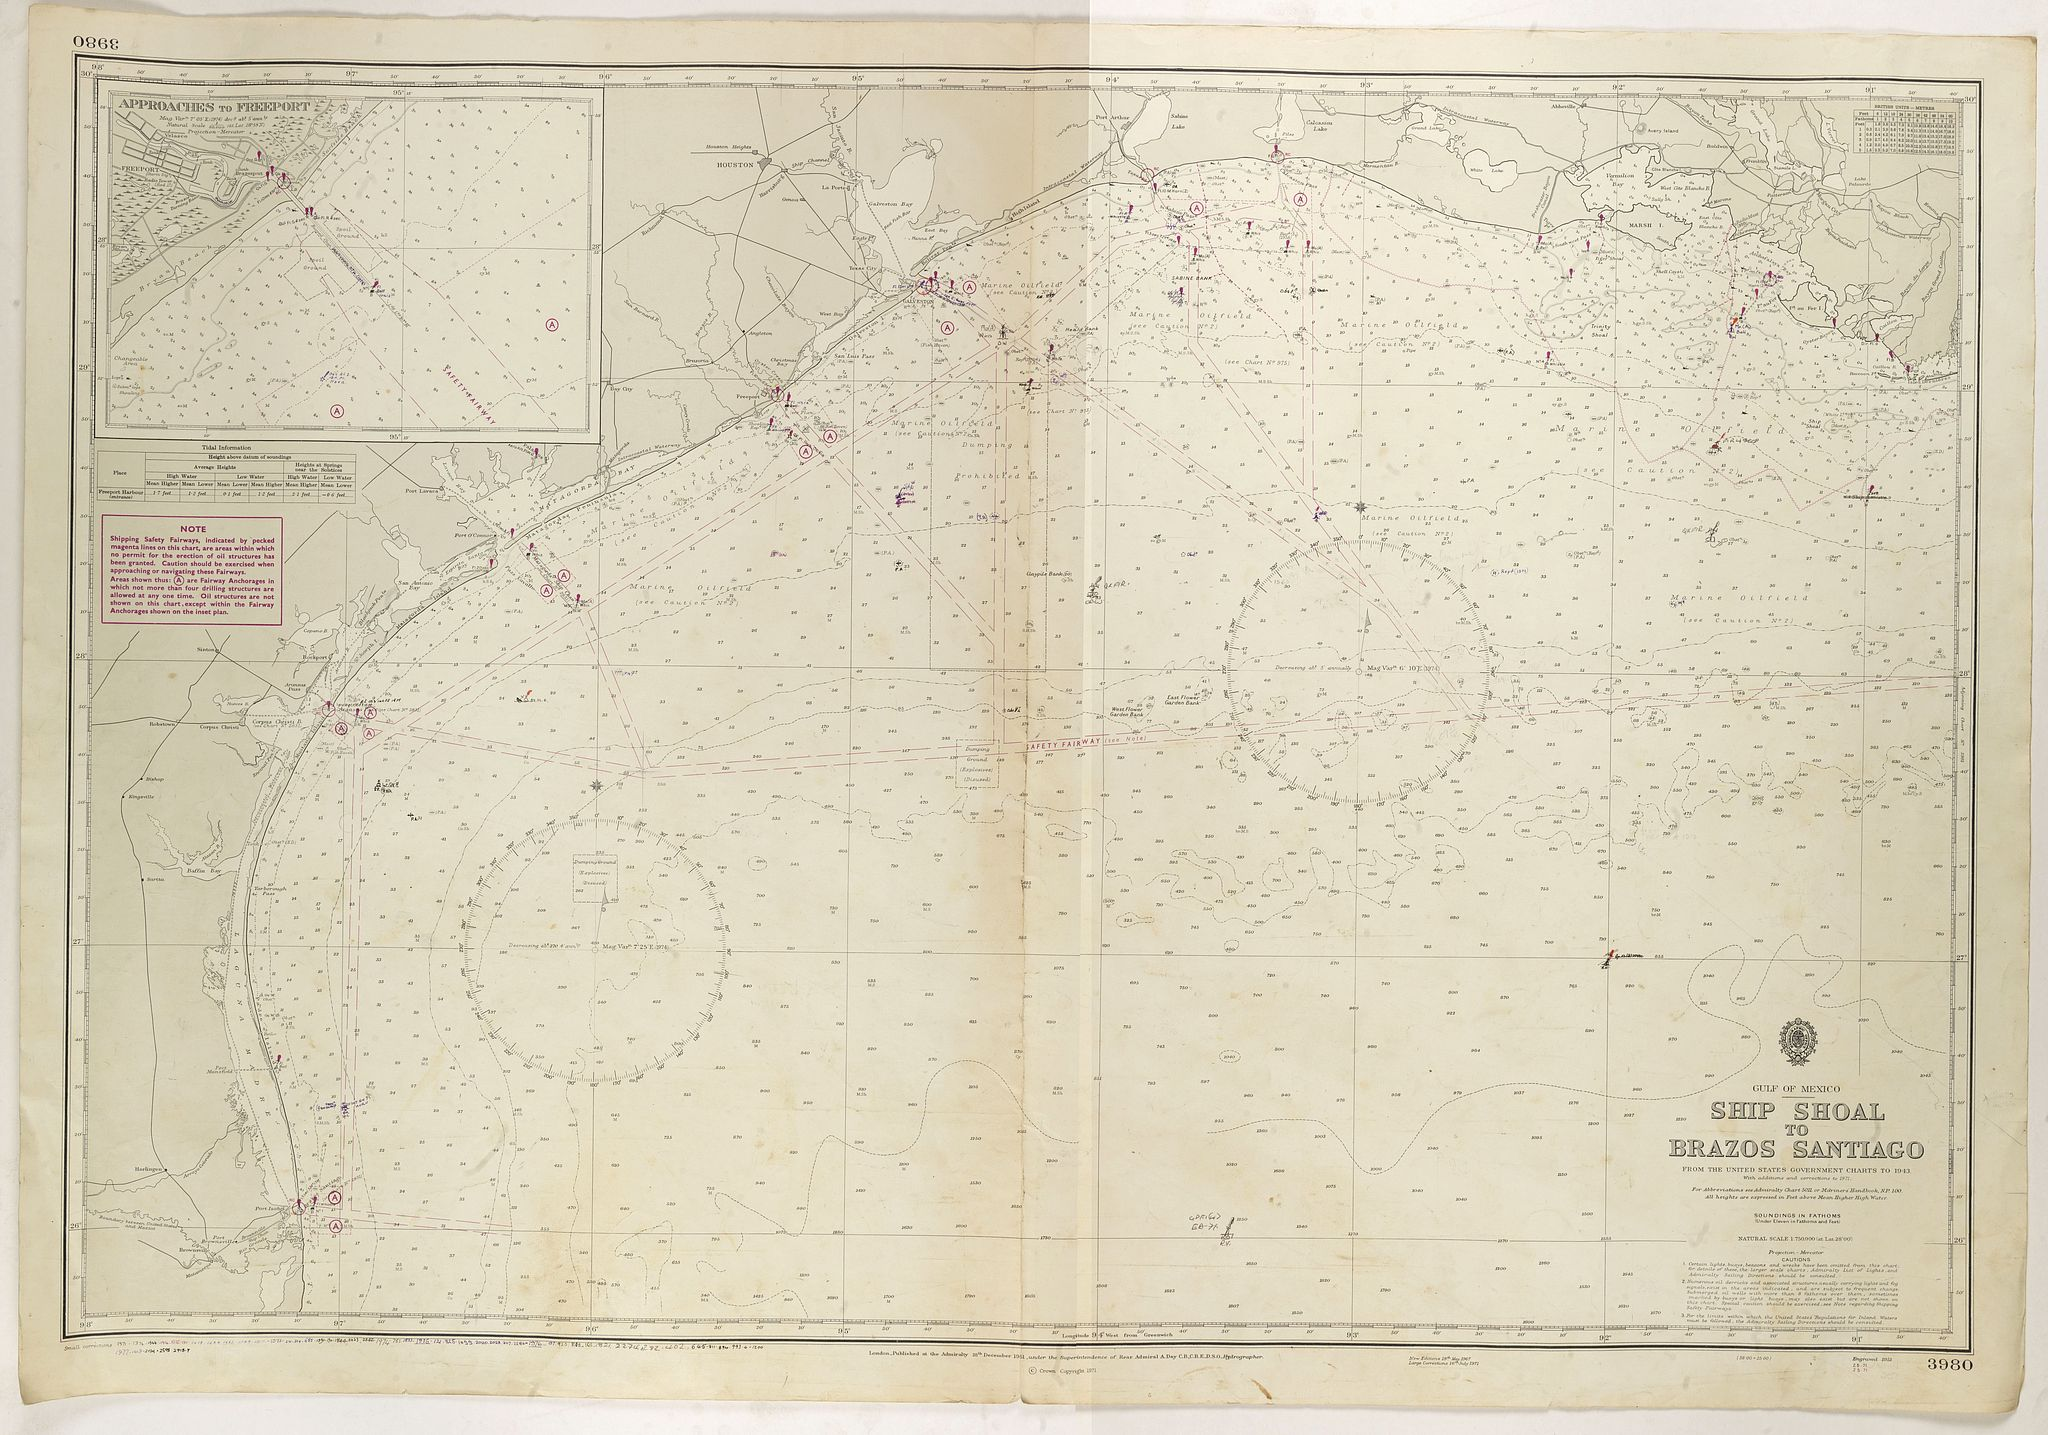 ADMIRALTY SEA CHART.,  Gulf of Mexico. Ship Shoal to Brazos Santiago., antique map, old maps